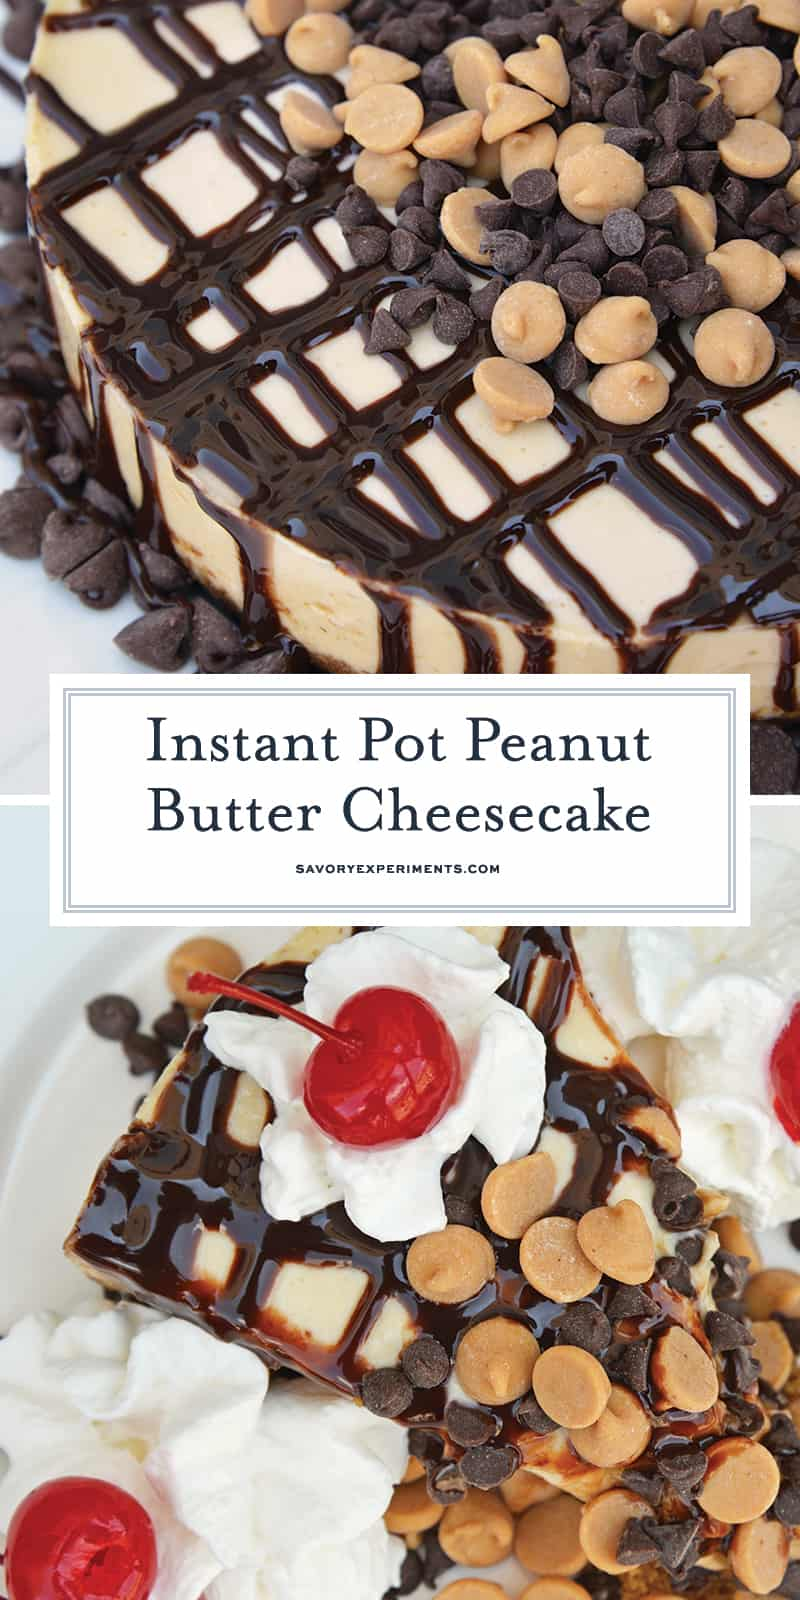 Instant Pot Peanut Butter Cheesecake is a rich and creamy cheesecake with a graham cracker crust, layer of chocolate and topped with peanut butter and chocolate chips. #instantpotcheesecake #peanutbuttercheesecake www.savoryexperiments.com